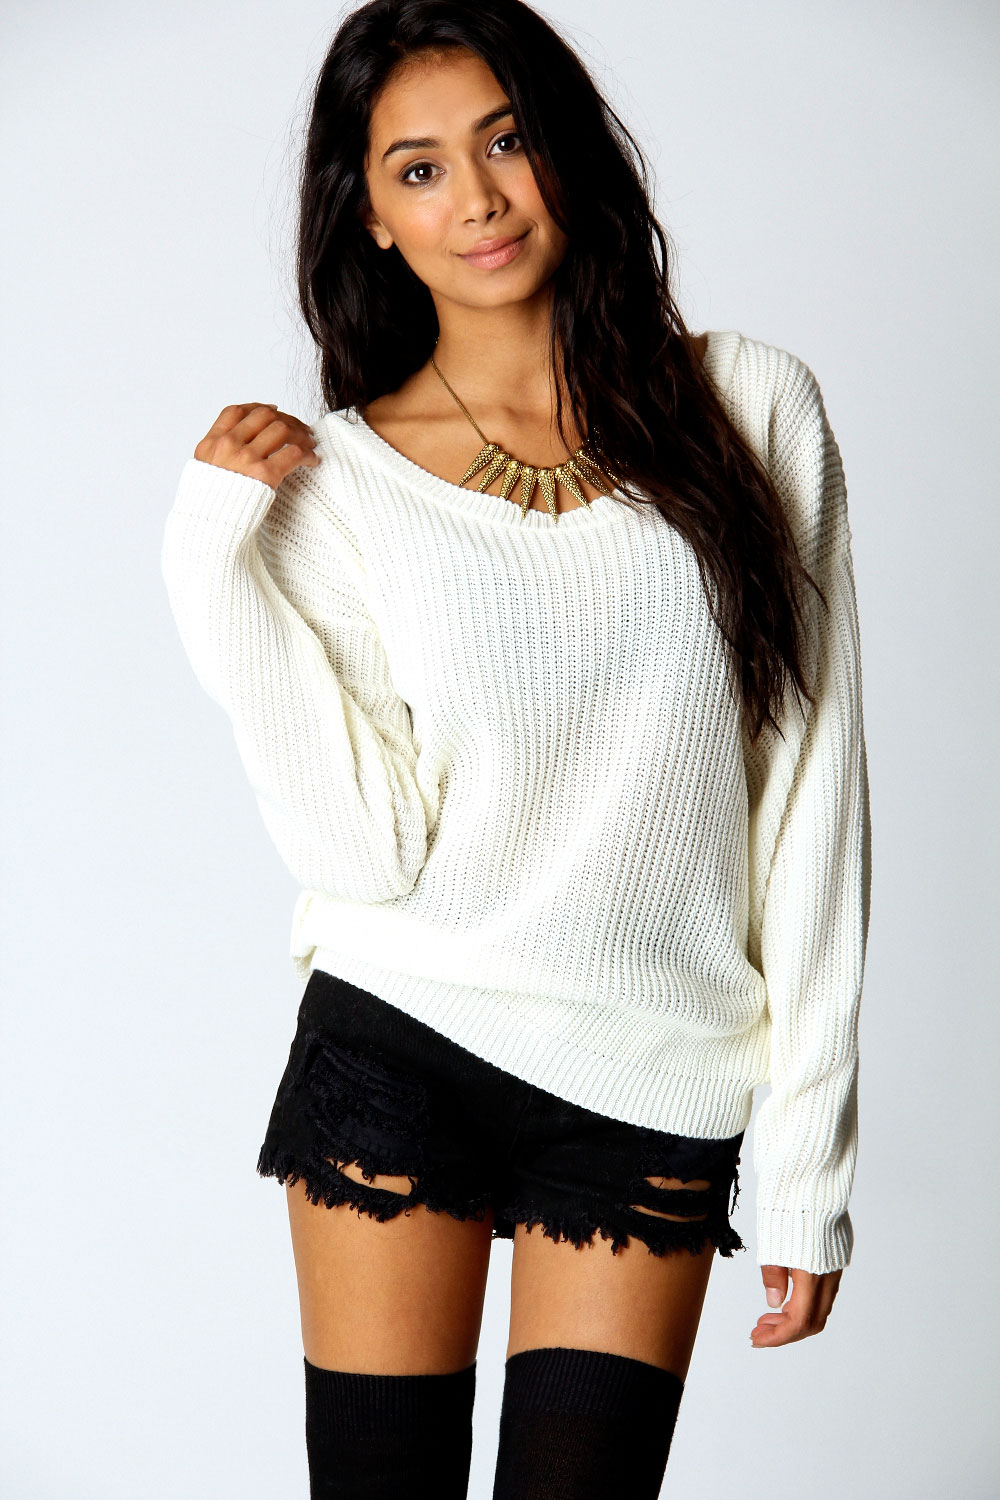 Boohoo-Womens-Ladies-Katherine-Waist-Length-Long-Sleeve-Oversized-Jumper